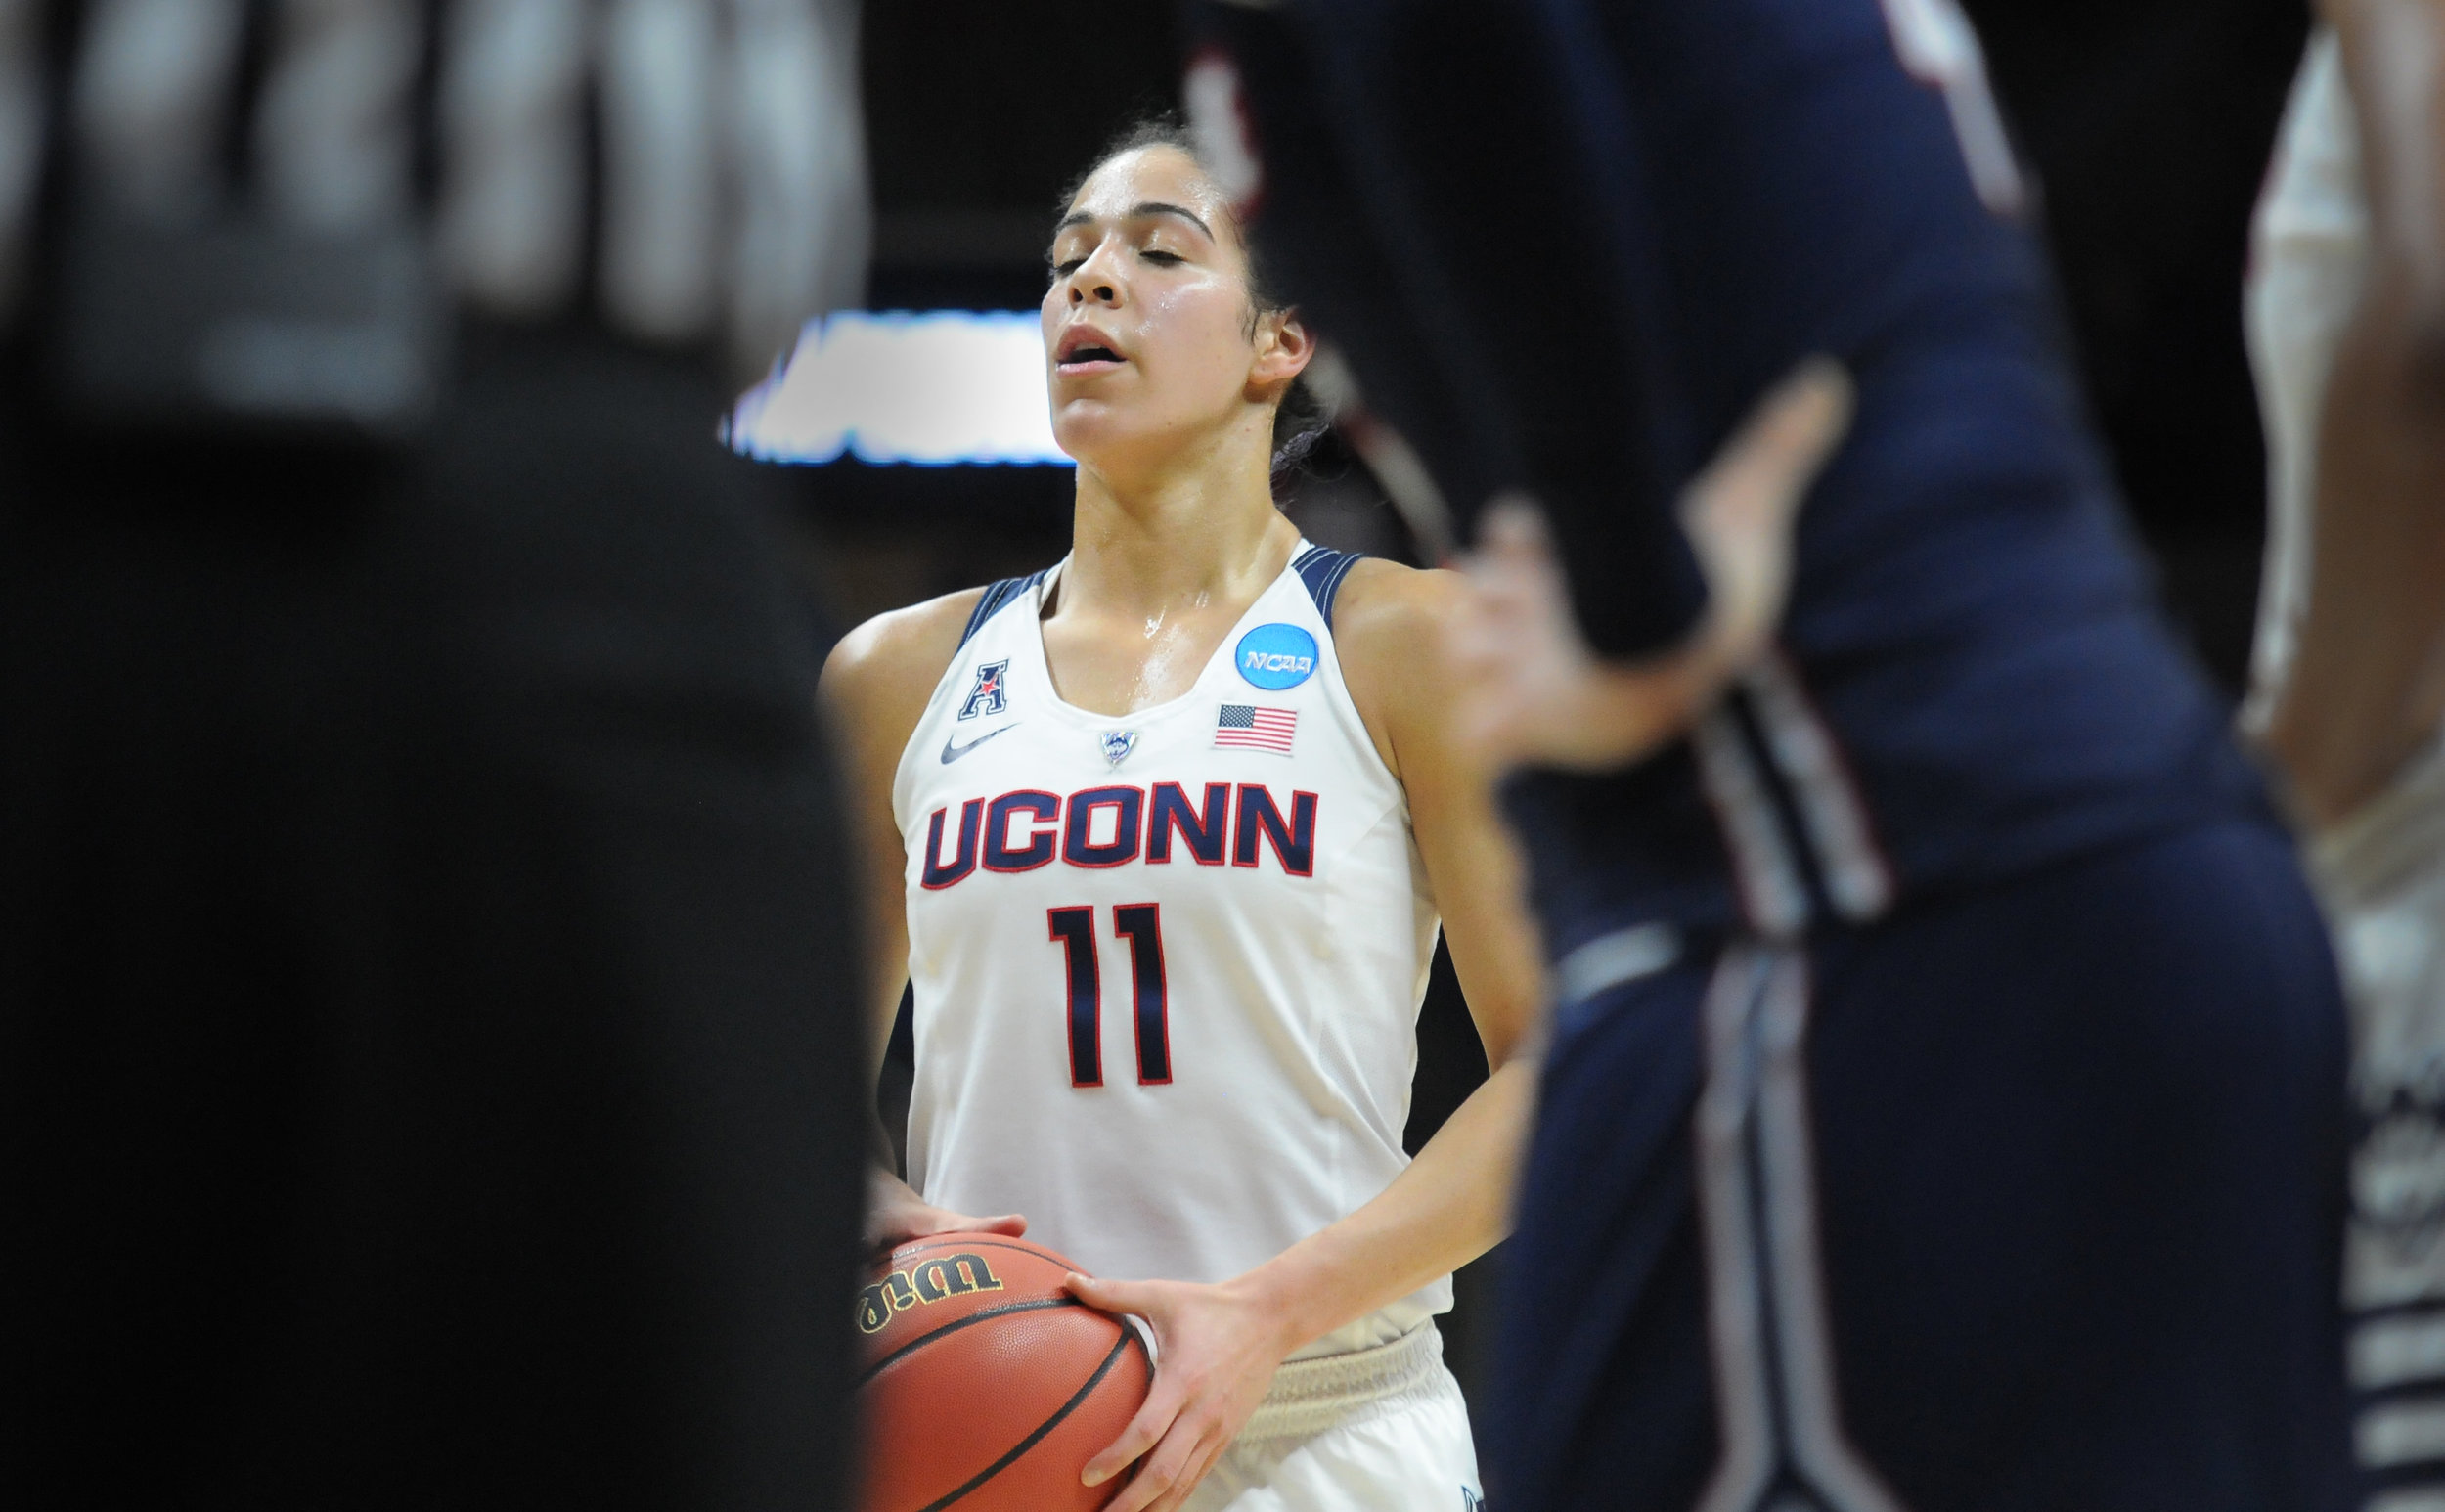 Sophomore guard Kia Nurse (11) prepares for a free throw against Duquesne in the second round of the NCAA tournament on Monday, March 22 at Gampel Pavilion. She scored seven points with three rebounds en route to a 97-51 victory.